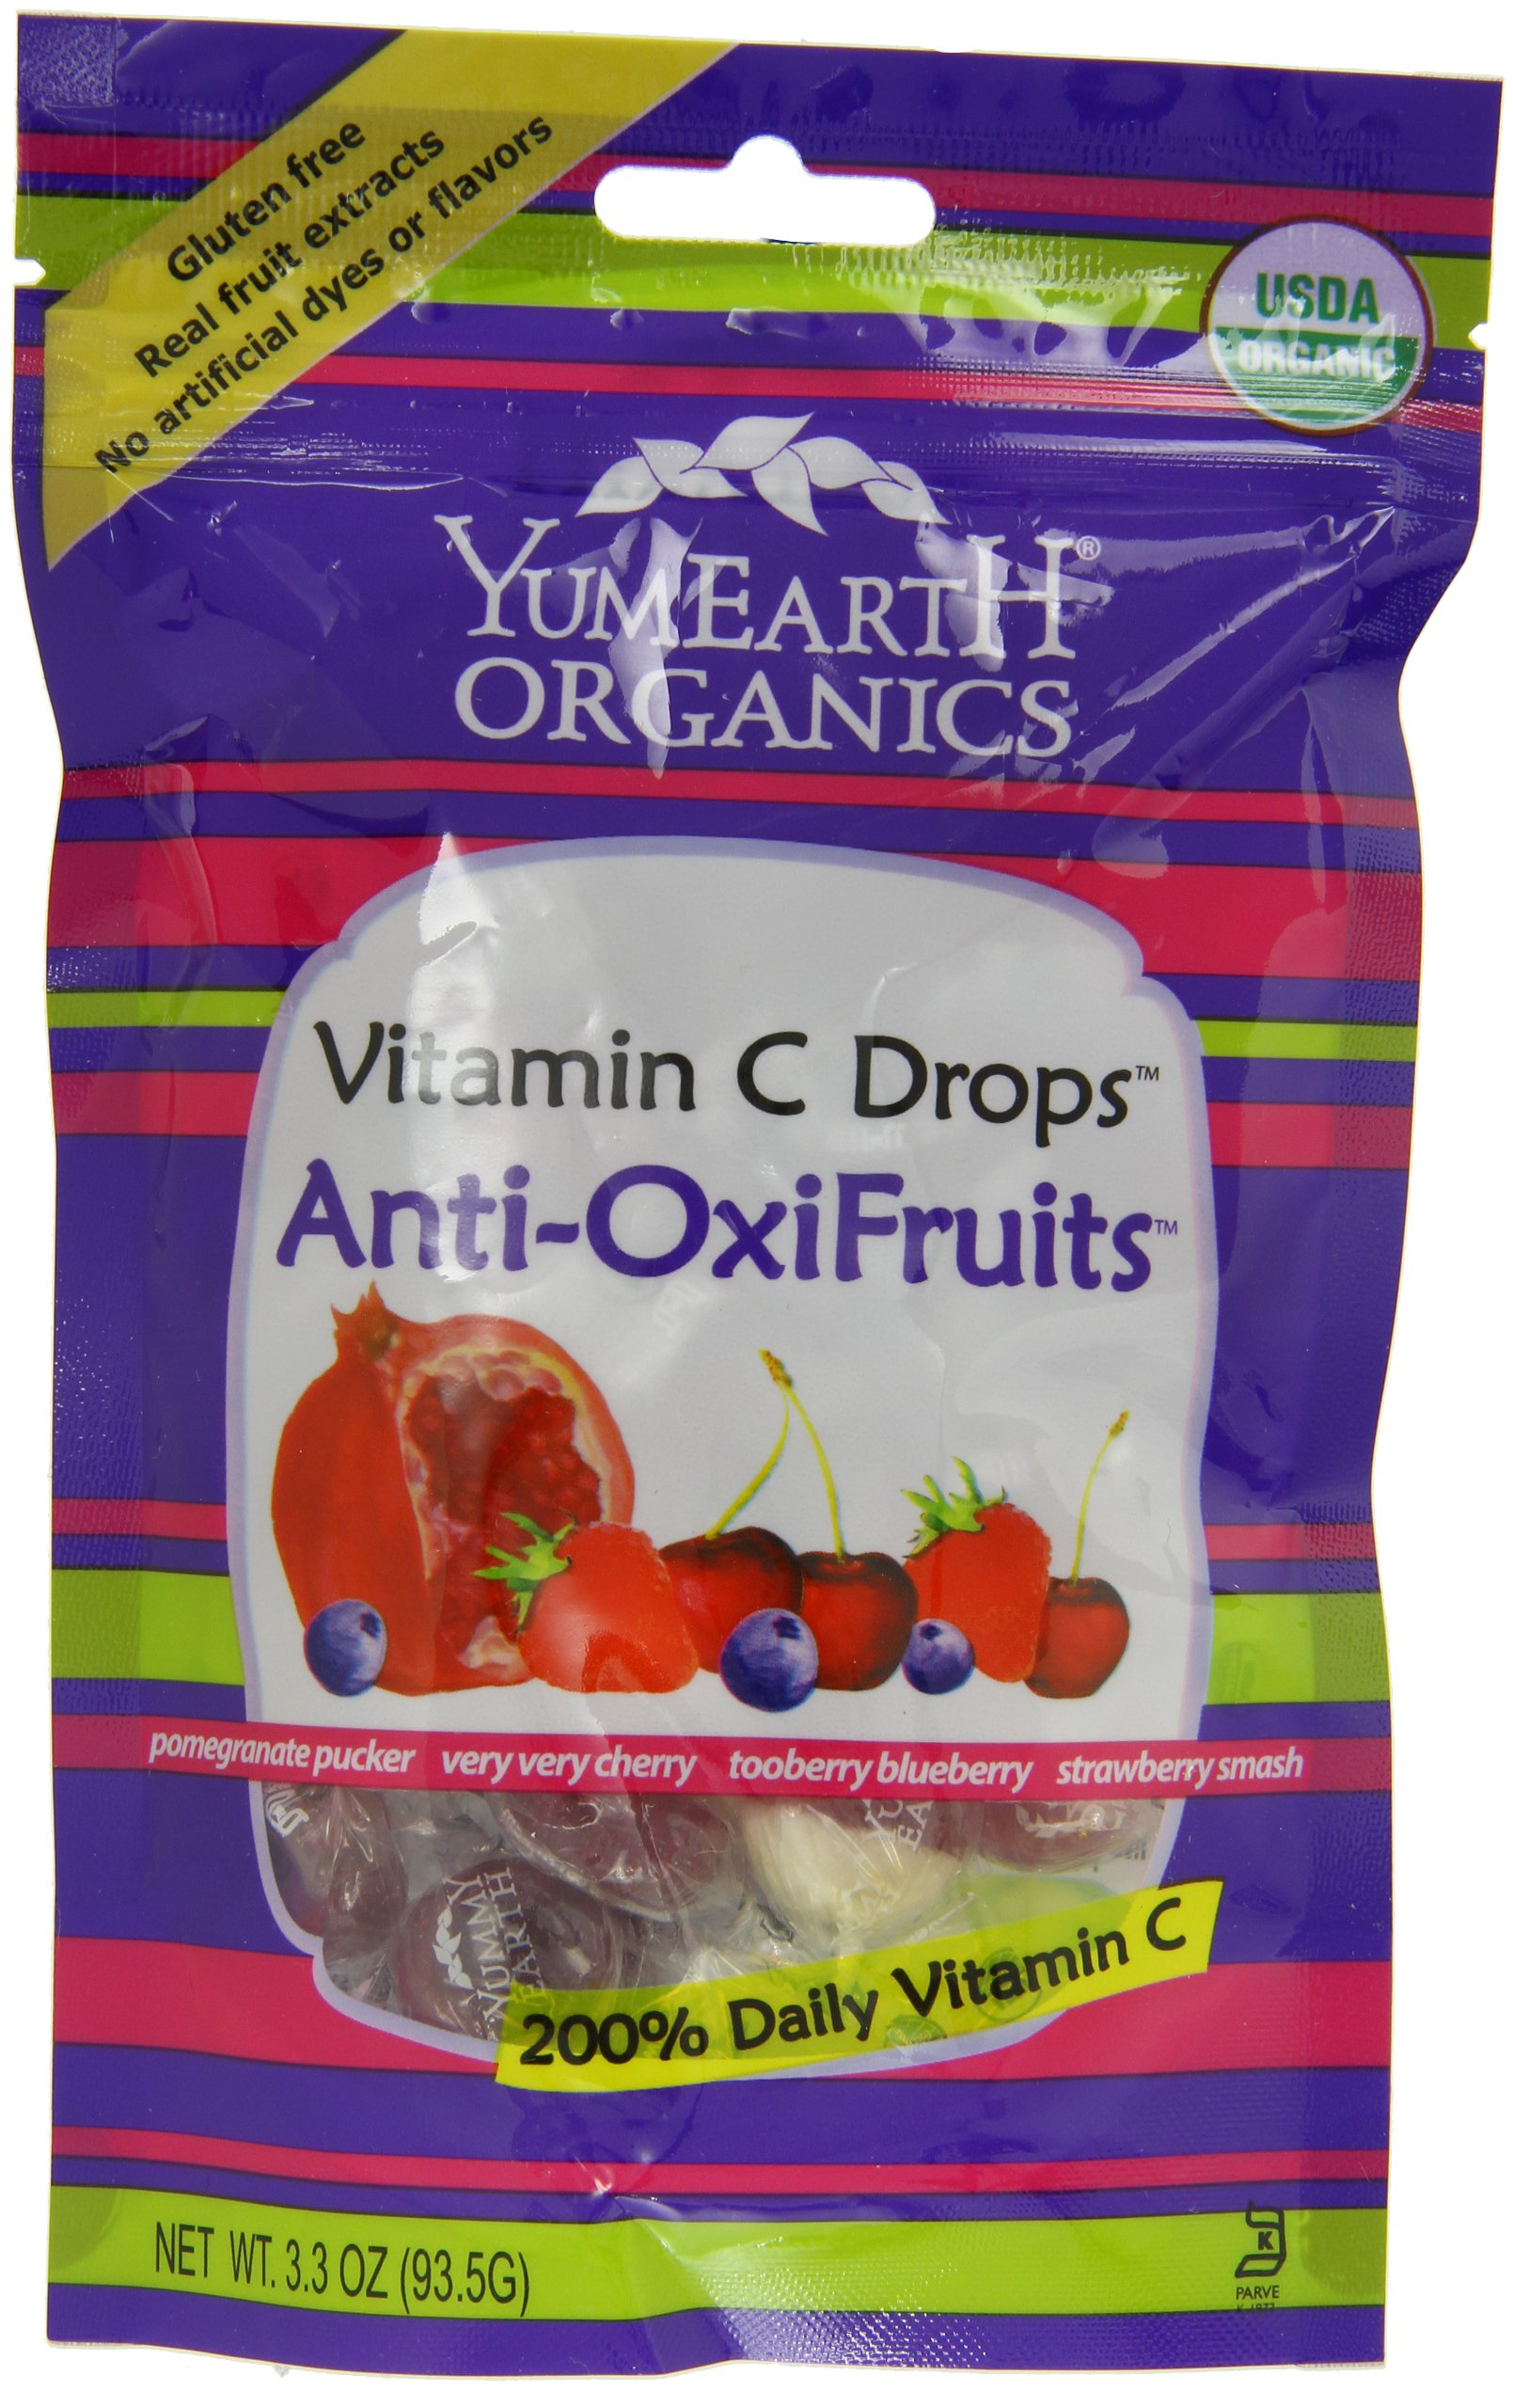 Yummy Earth Prganics Vitamin C Drops Anti Oxifruits, 3.30 Oz (Pack of 6)